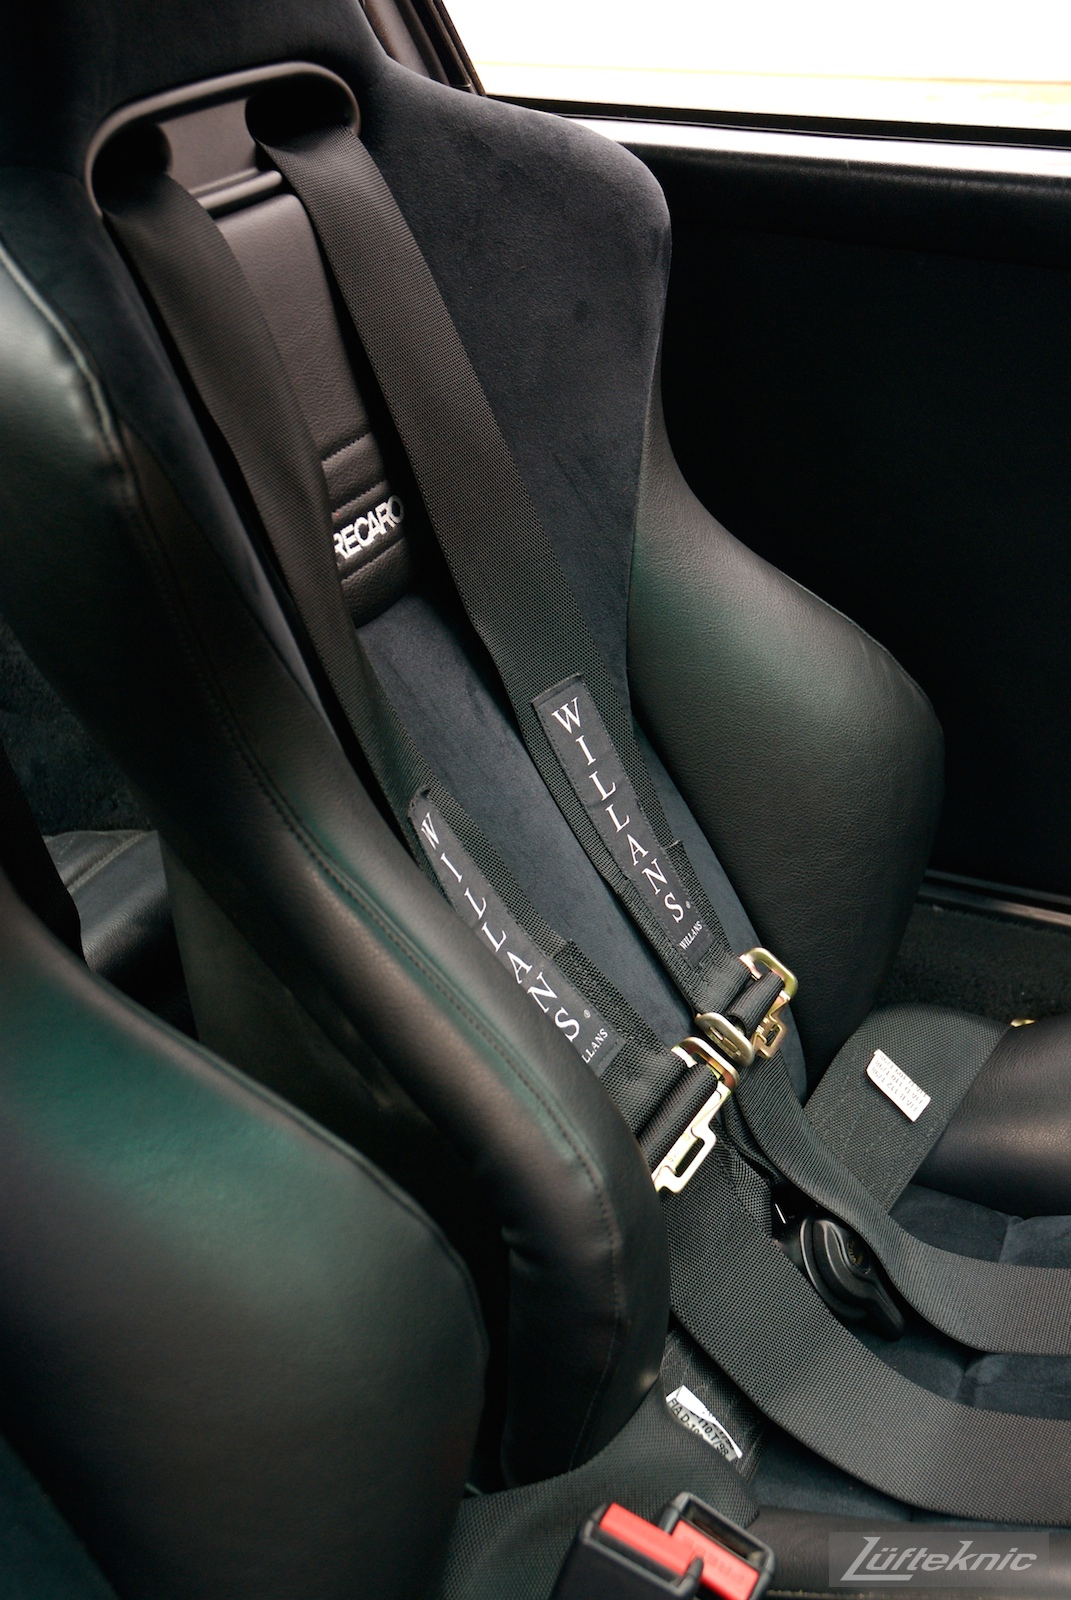 Recaro seat with Willans harness.